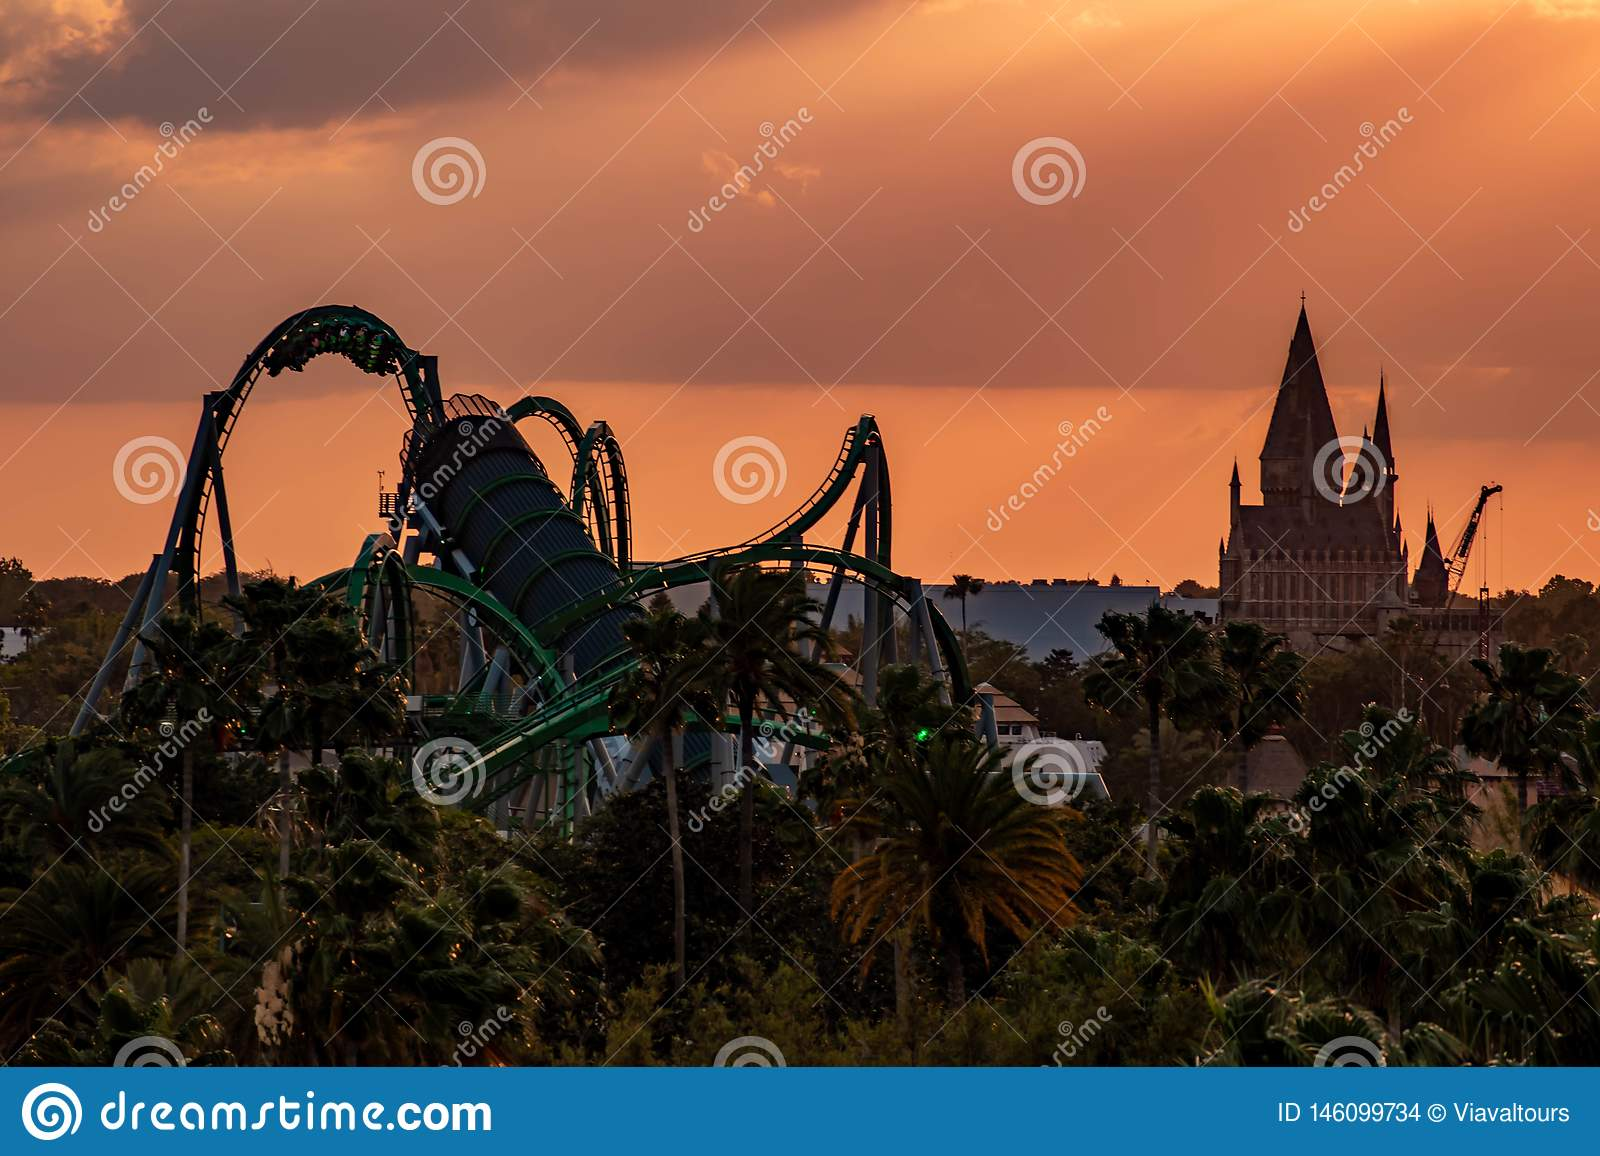 Top View Of Hogwarts Castle And The Incredible Hulk Rollercoaster